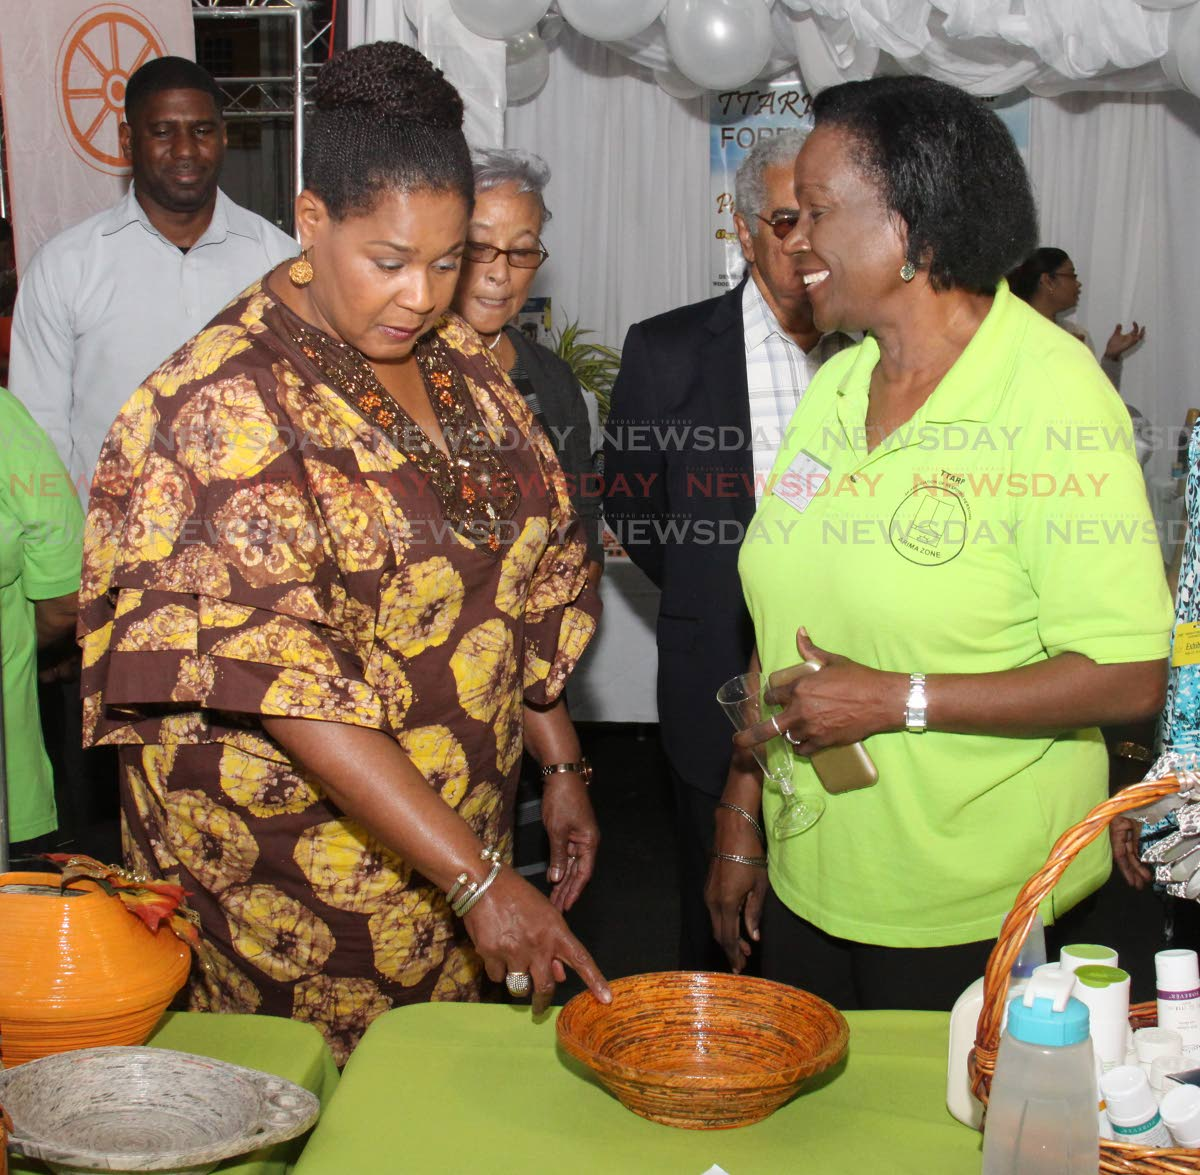 Bowled over: President Paula-Mae Weekes, left, questions Sandra Sydney, a zone representative from the Association of Responsible Persons Eastern Angels, Arima, about her paper bowl art at the TTARP 25th anniversary expo, Centre of Excellence, Macoya yesterday. PHOTO BY ANGELO  MARCELLE